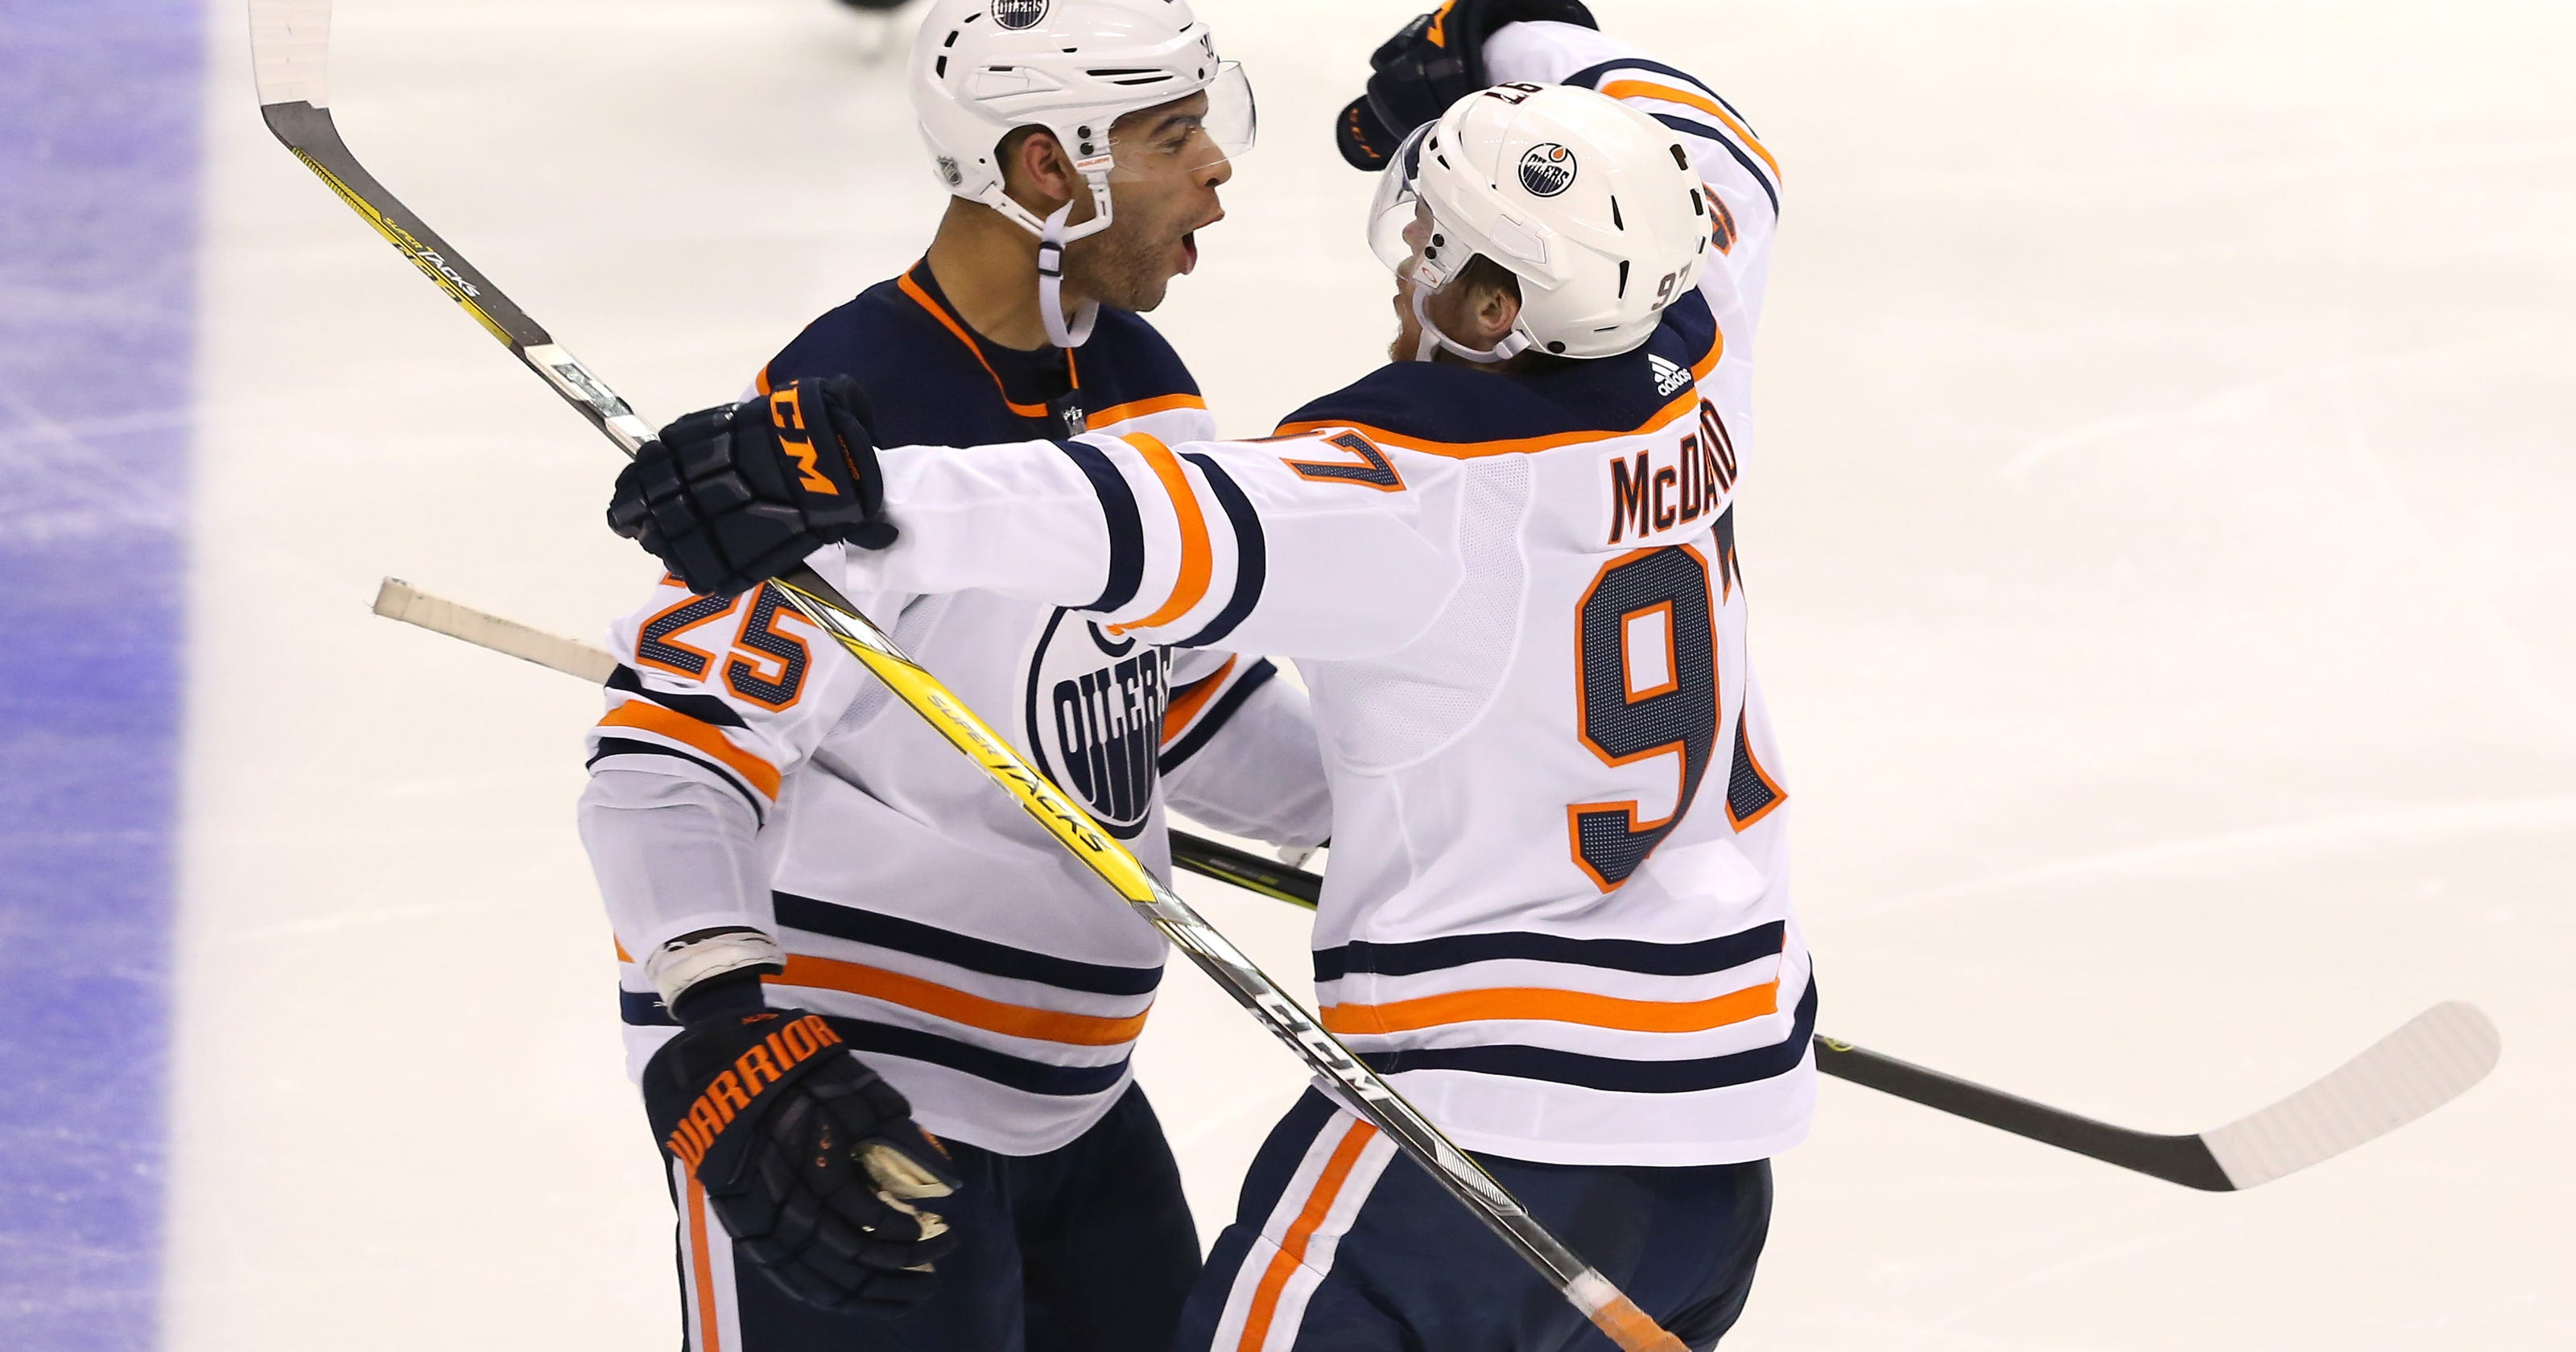 aad2b0757 Connor McDavid has another big game as Oilers rally